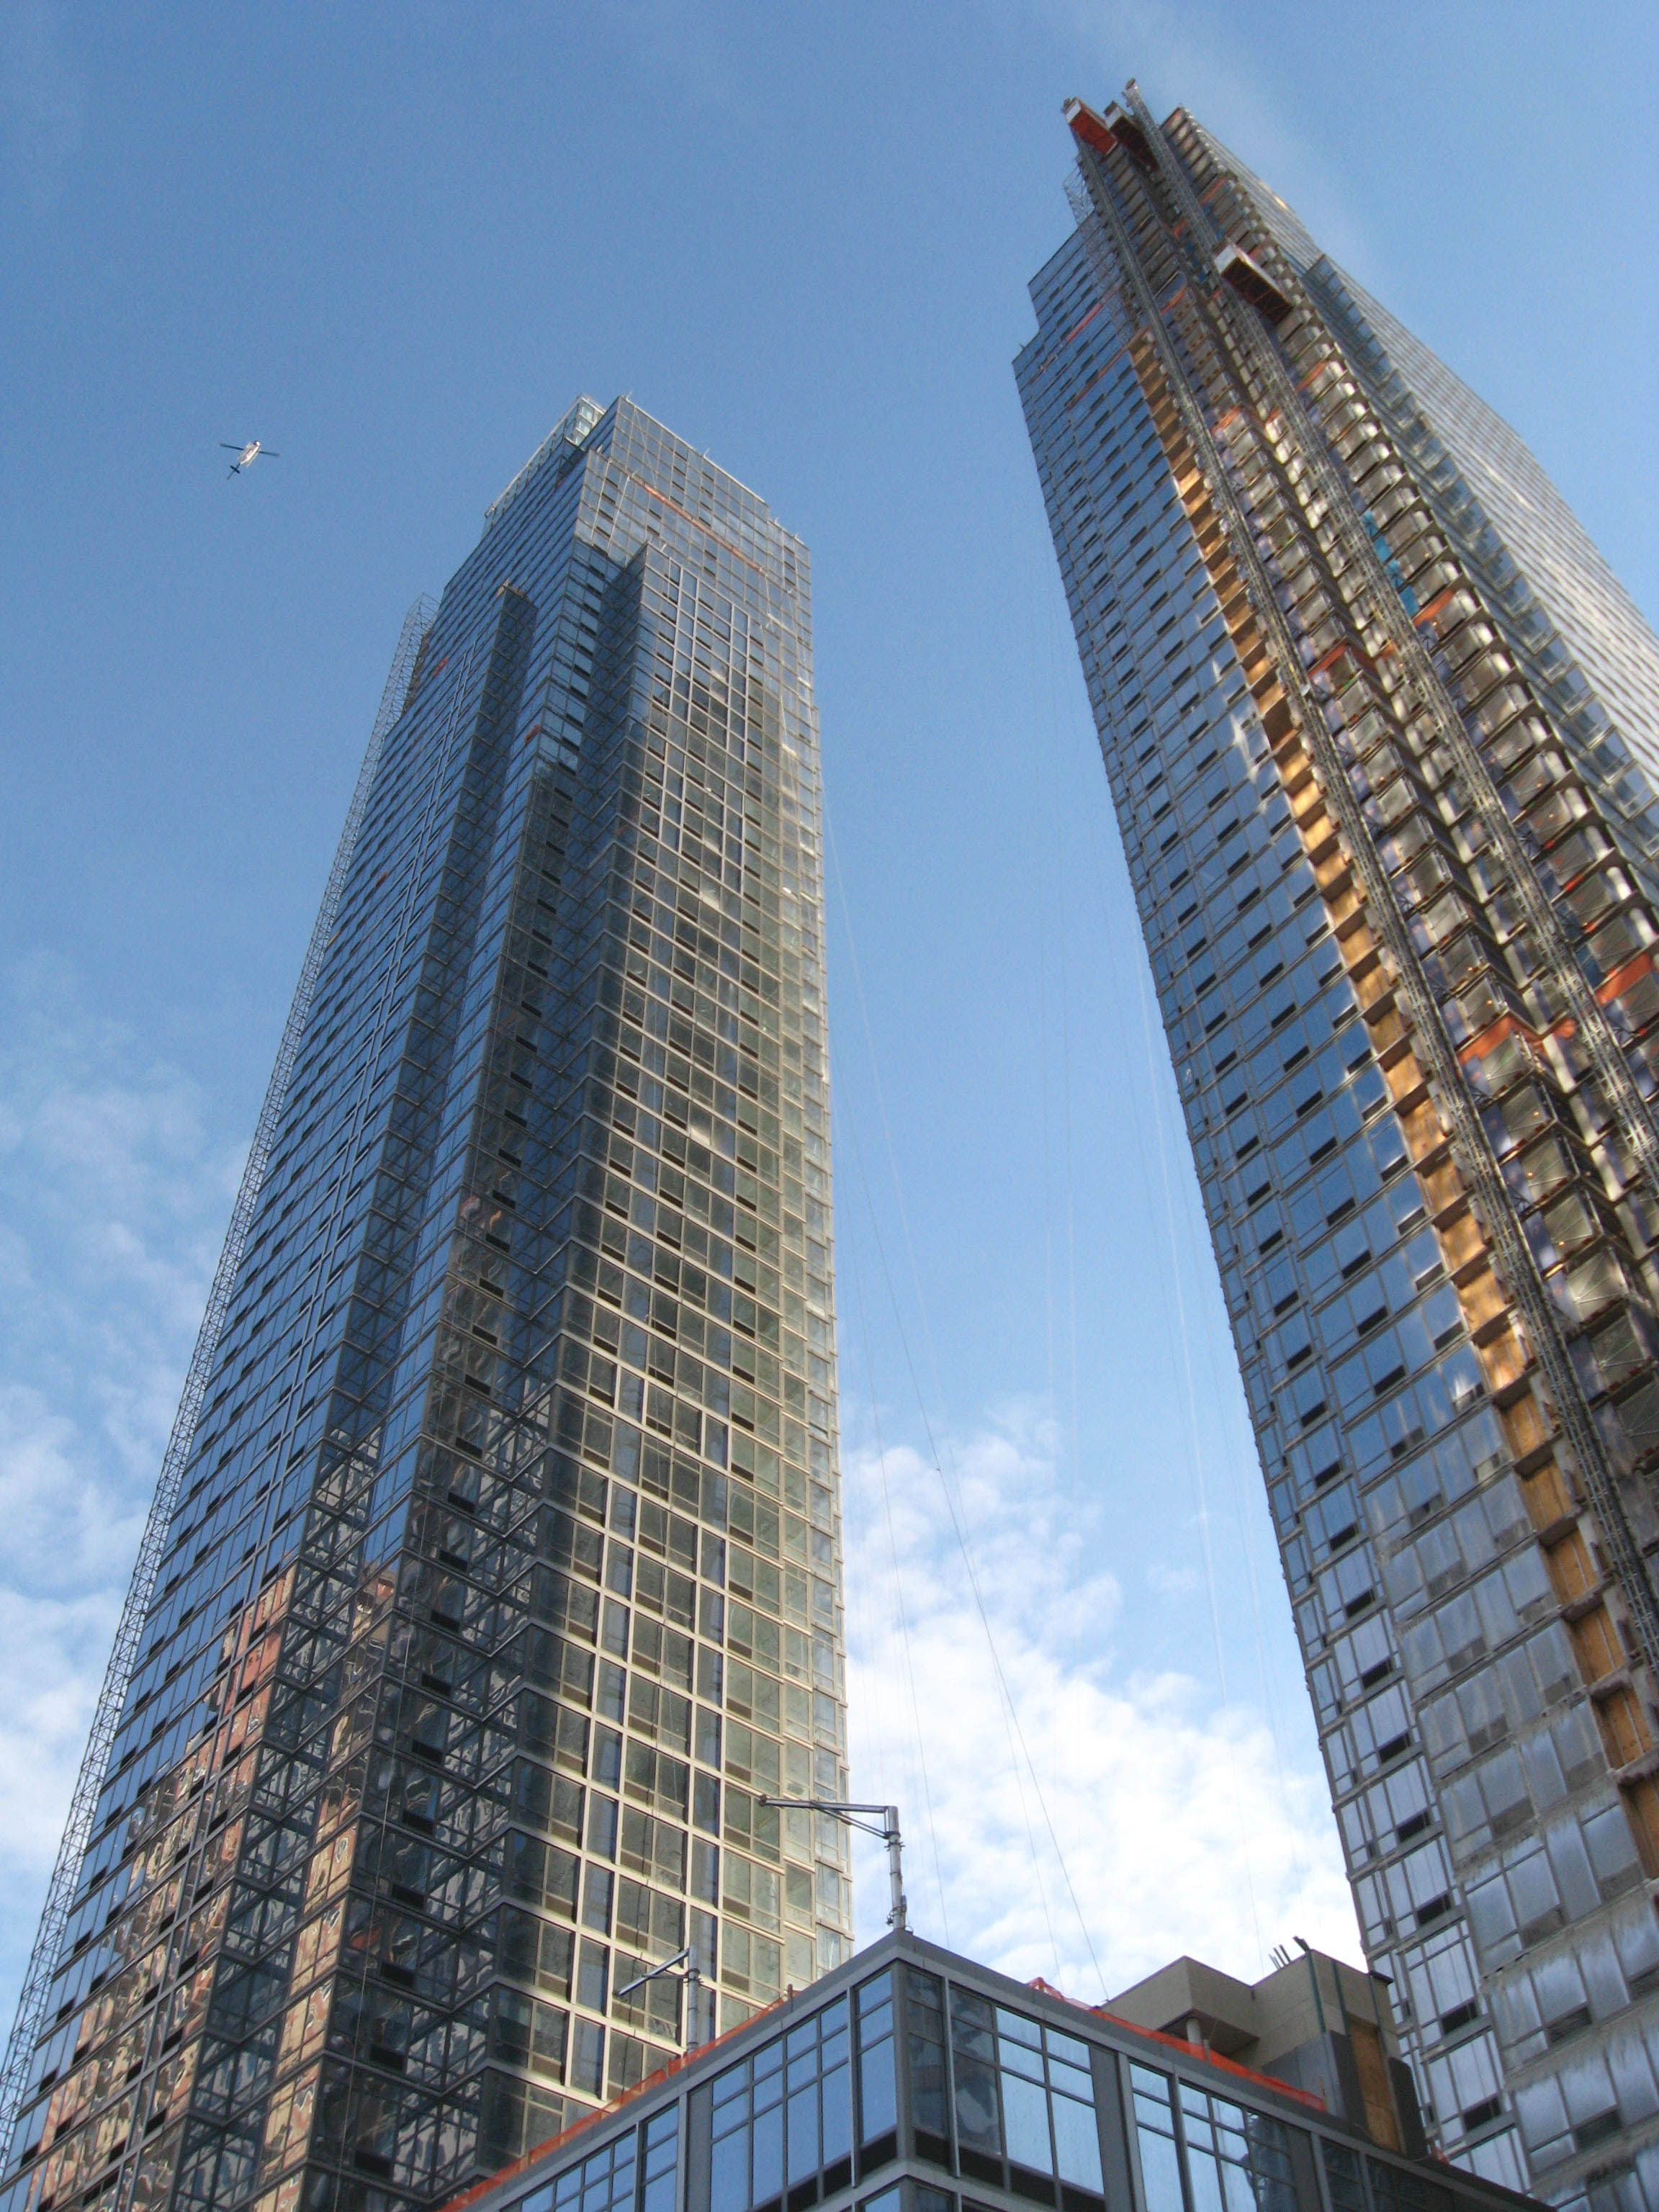 File:Silver Towers jeh.JPG - Wikimedia Commons